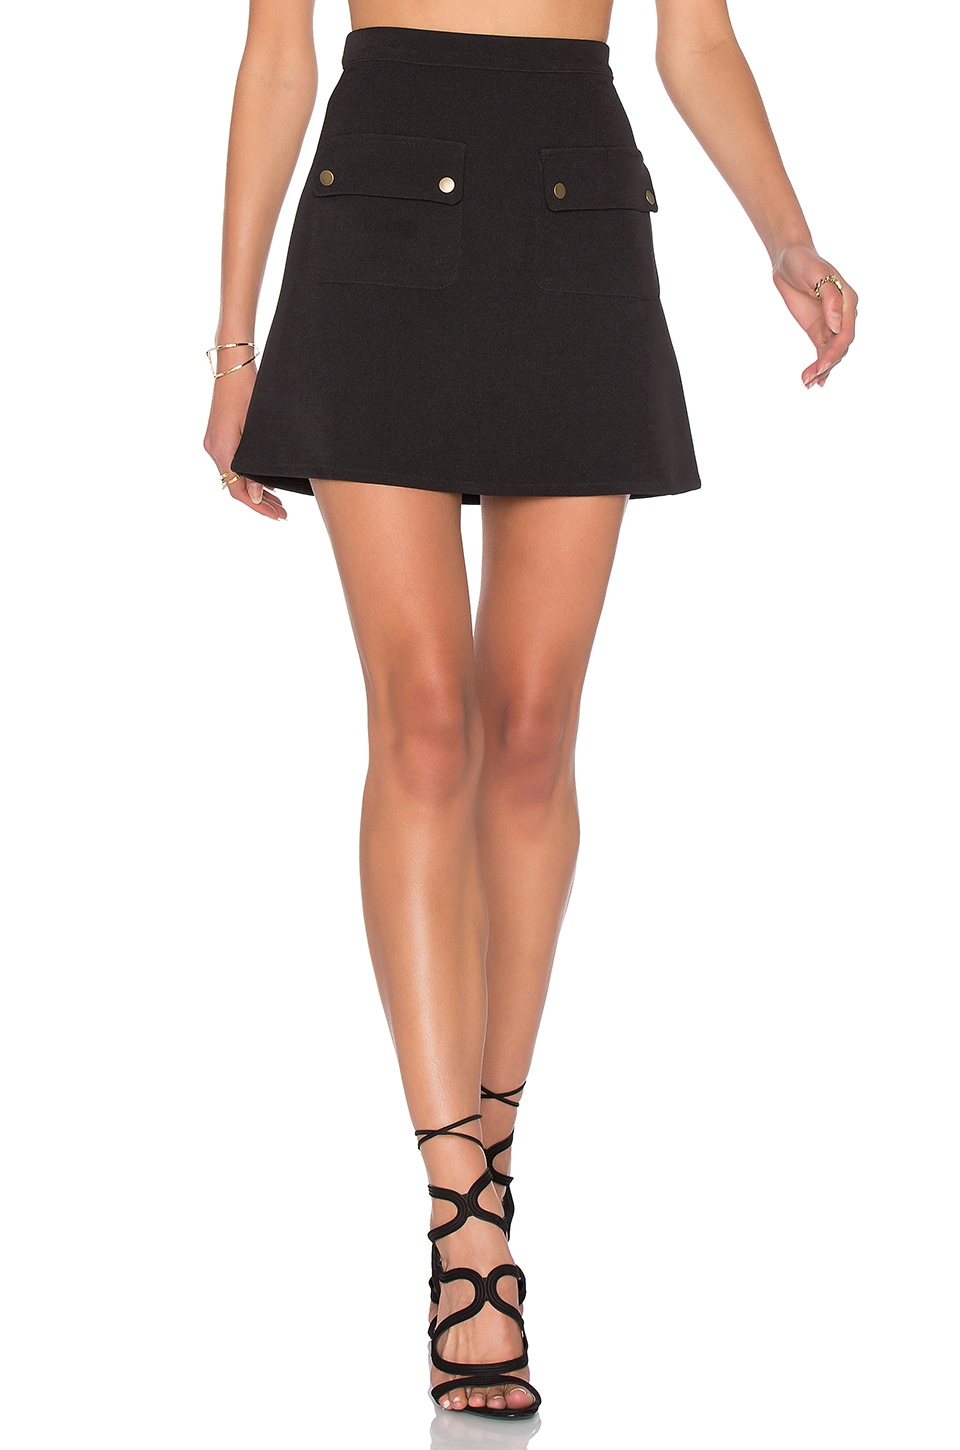 Lovers + Friends x REVOLVE Sienna Skirt in Black